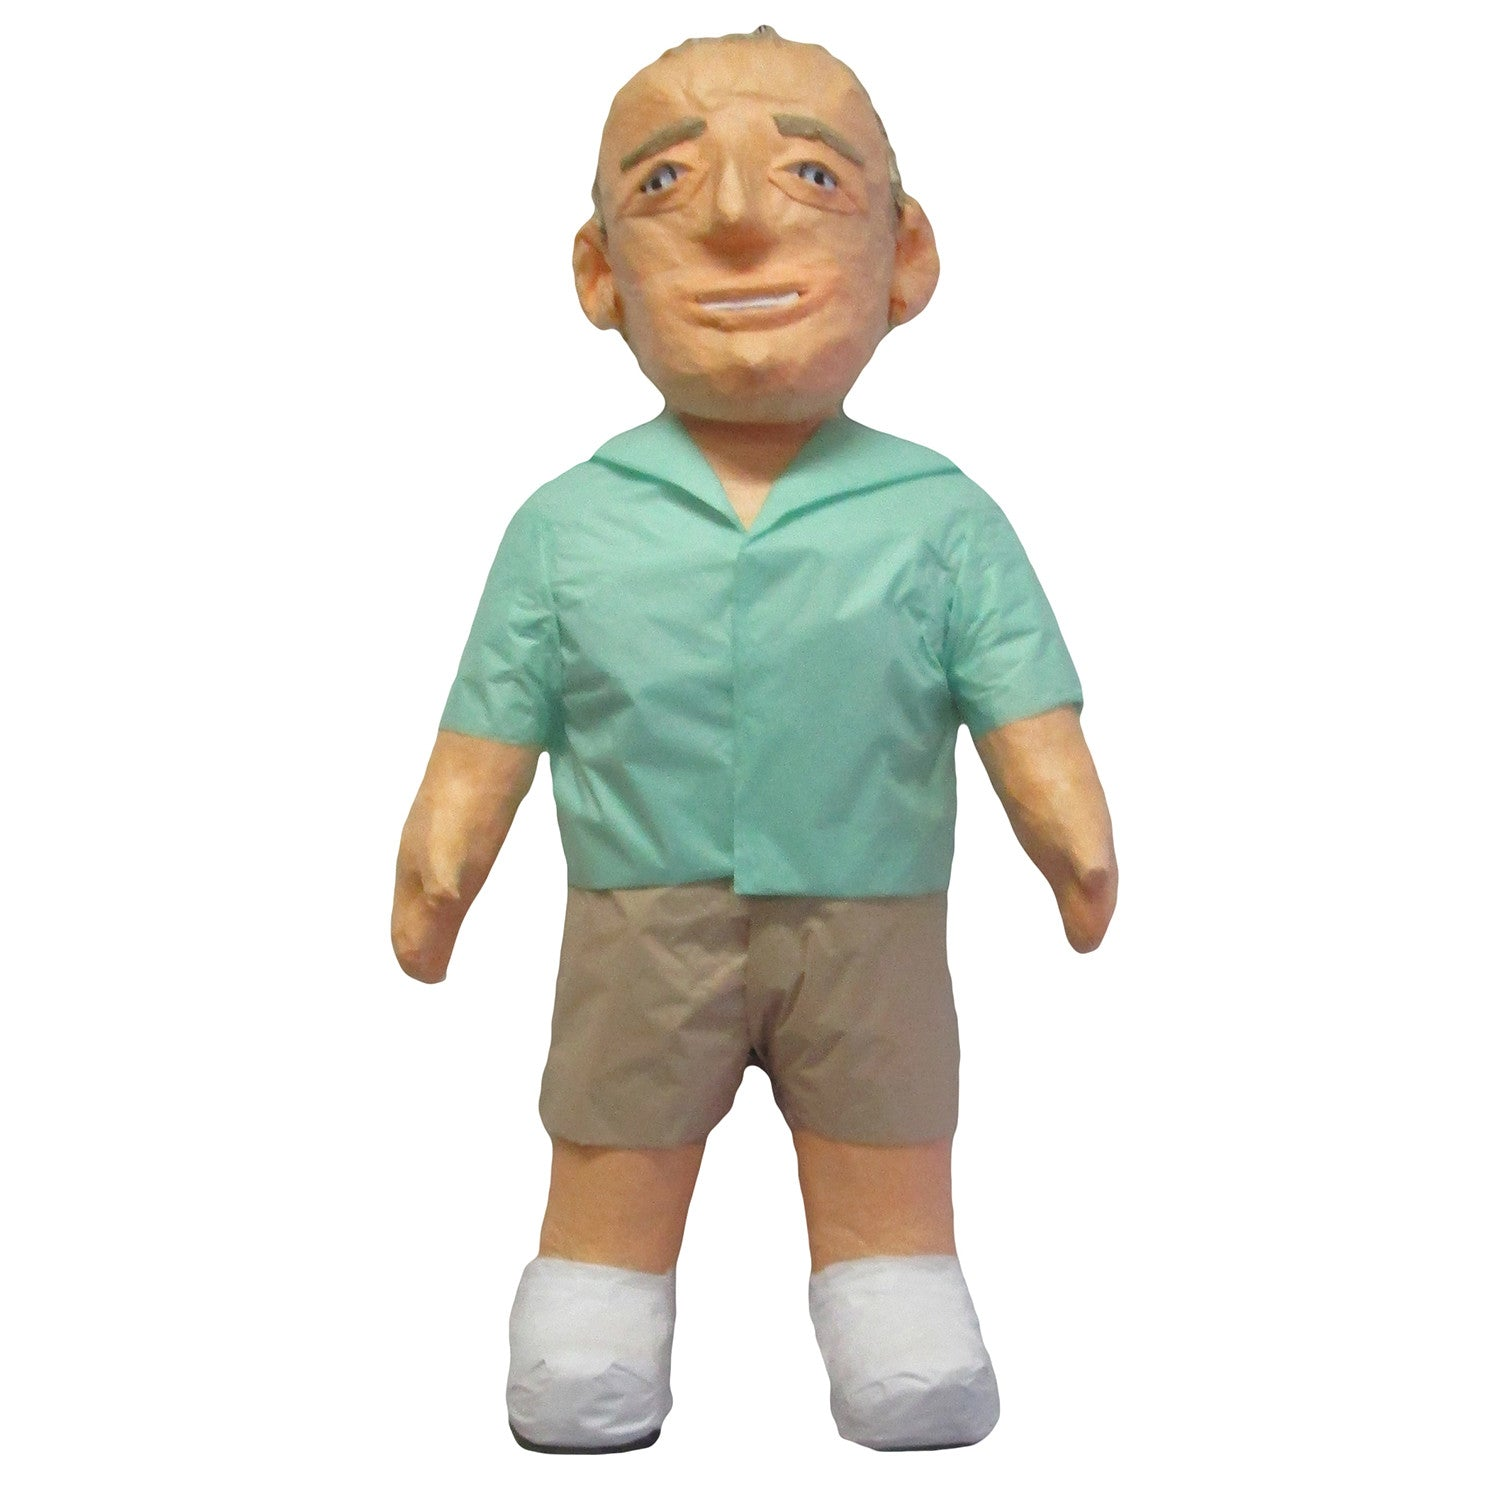 Man Green Shirt Custom Pinata